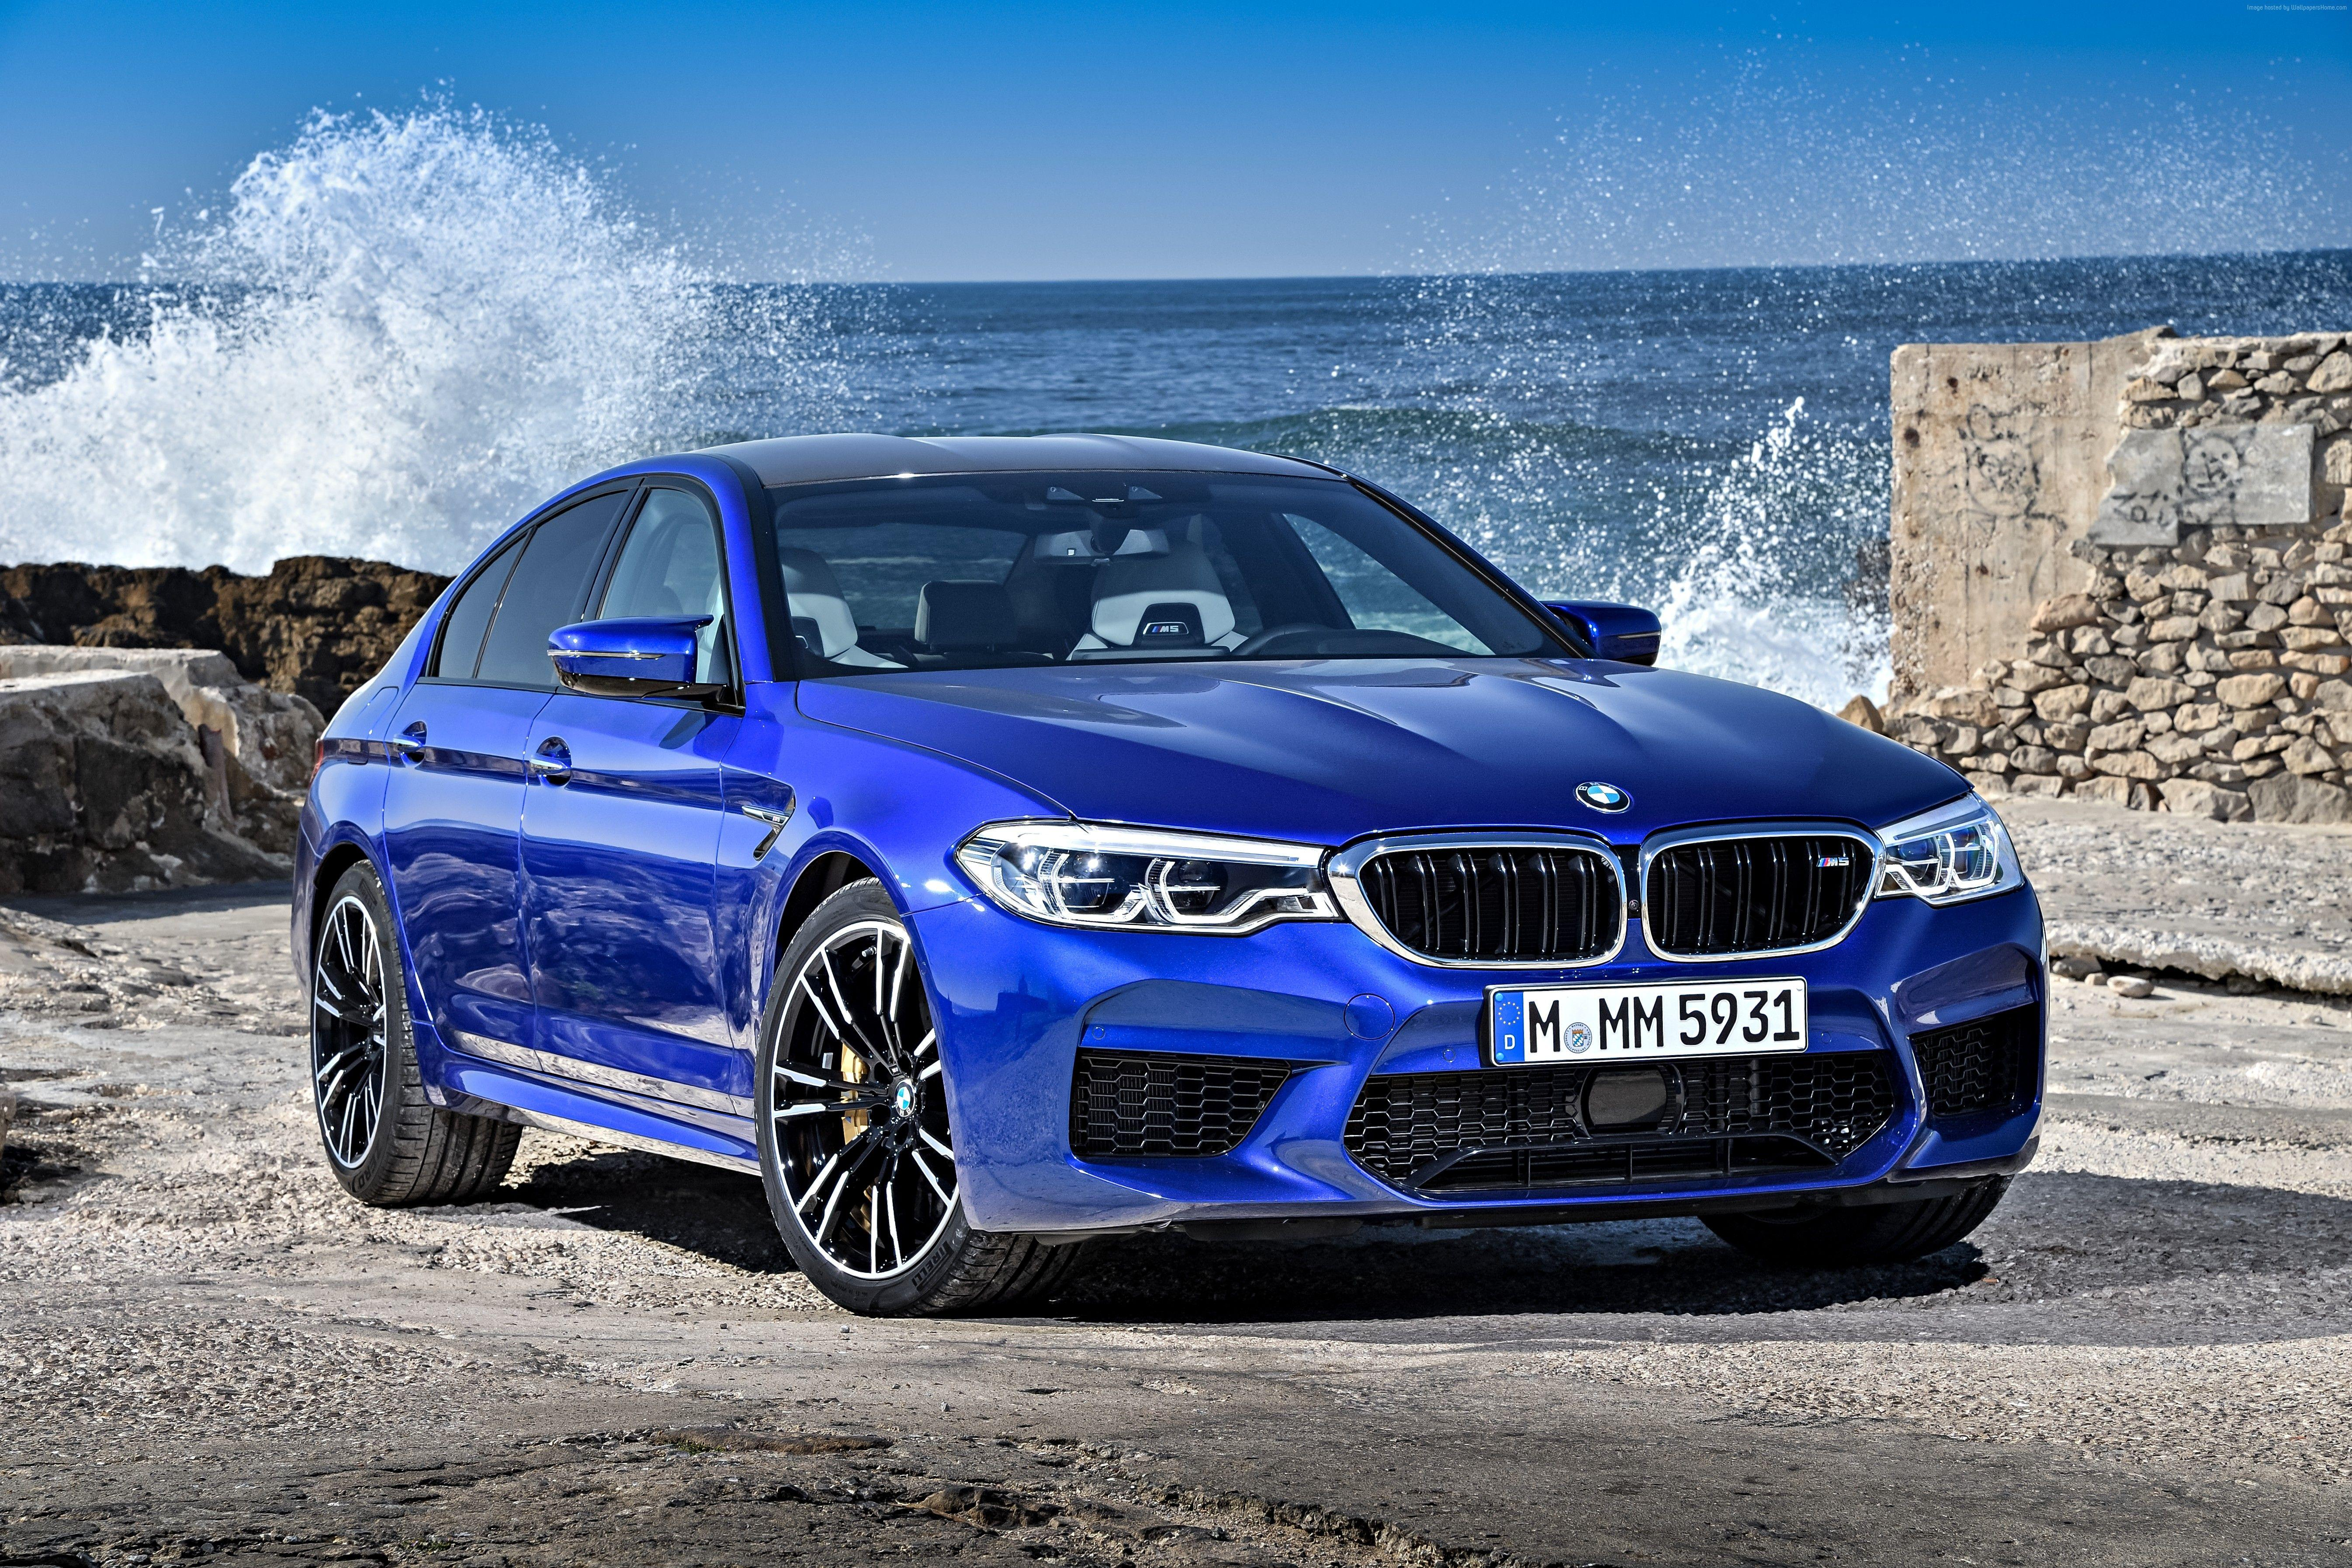 Topic For Bmw M5 Wallpaper Hd Iphone Bmw Car M4 Gts Iphone Wallpaper Wallpapers M5 Hd 1125x2436 M6 Racing Xs 10 X Hd Cityconnectapps